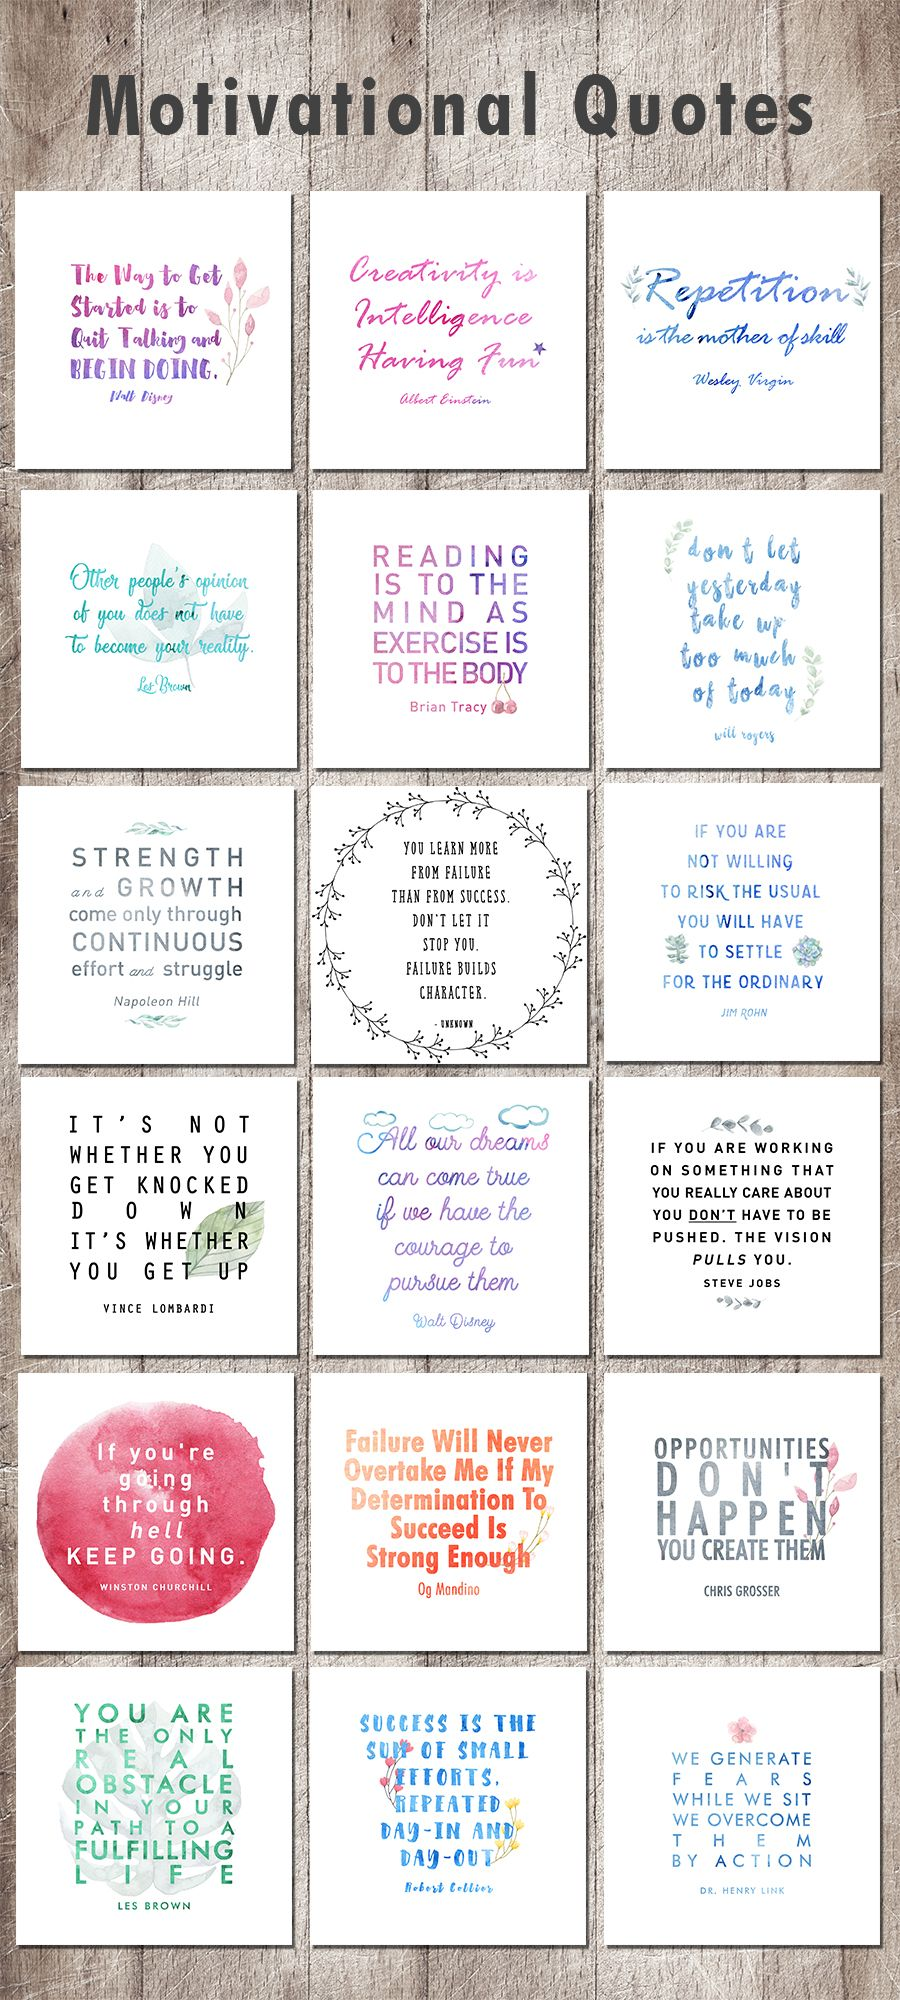 Motivational Quotes Beautiful And Inspiring Quotes Books Quotes